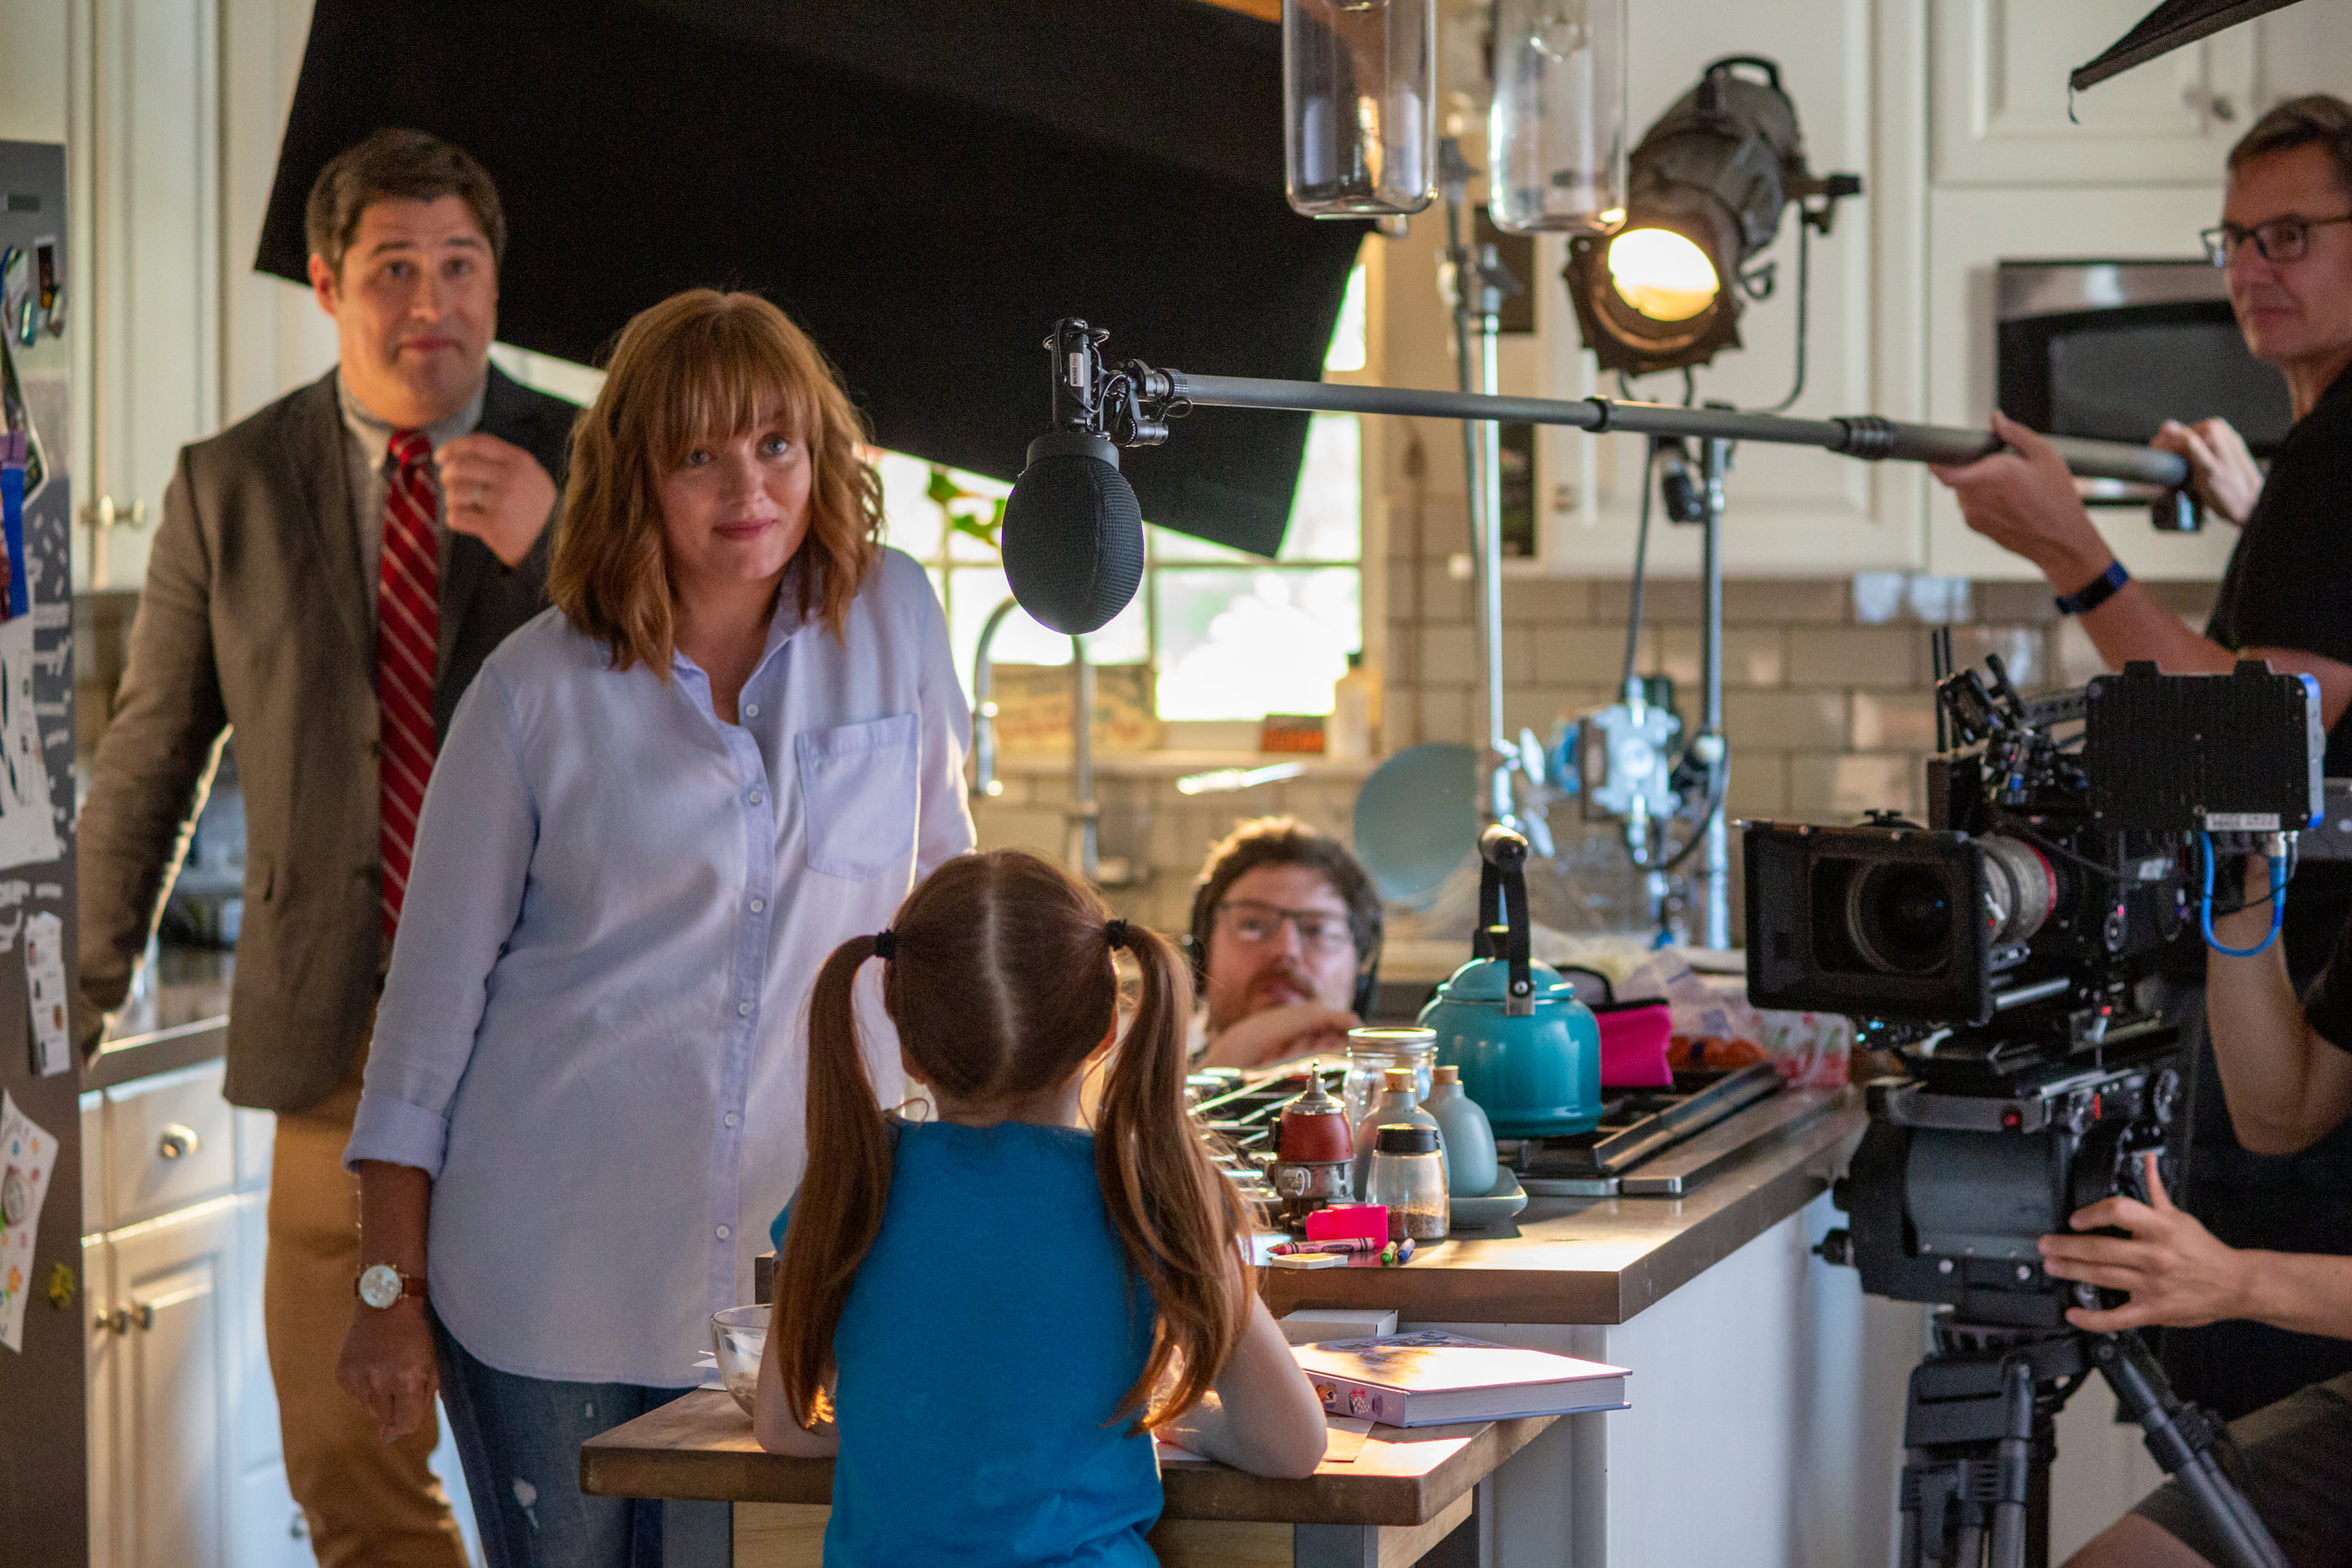 The crew shoots a family scene around the kitchen.